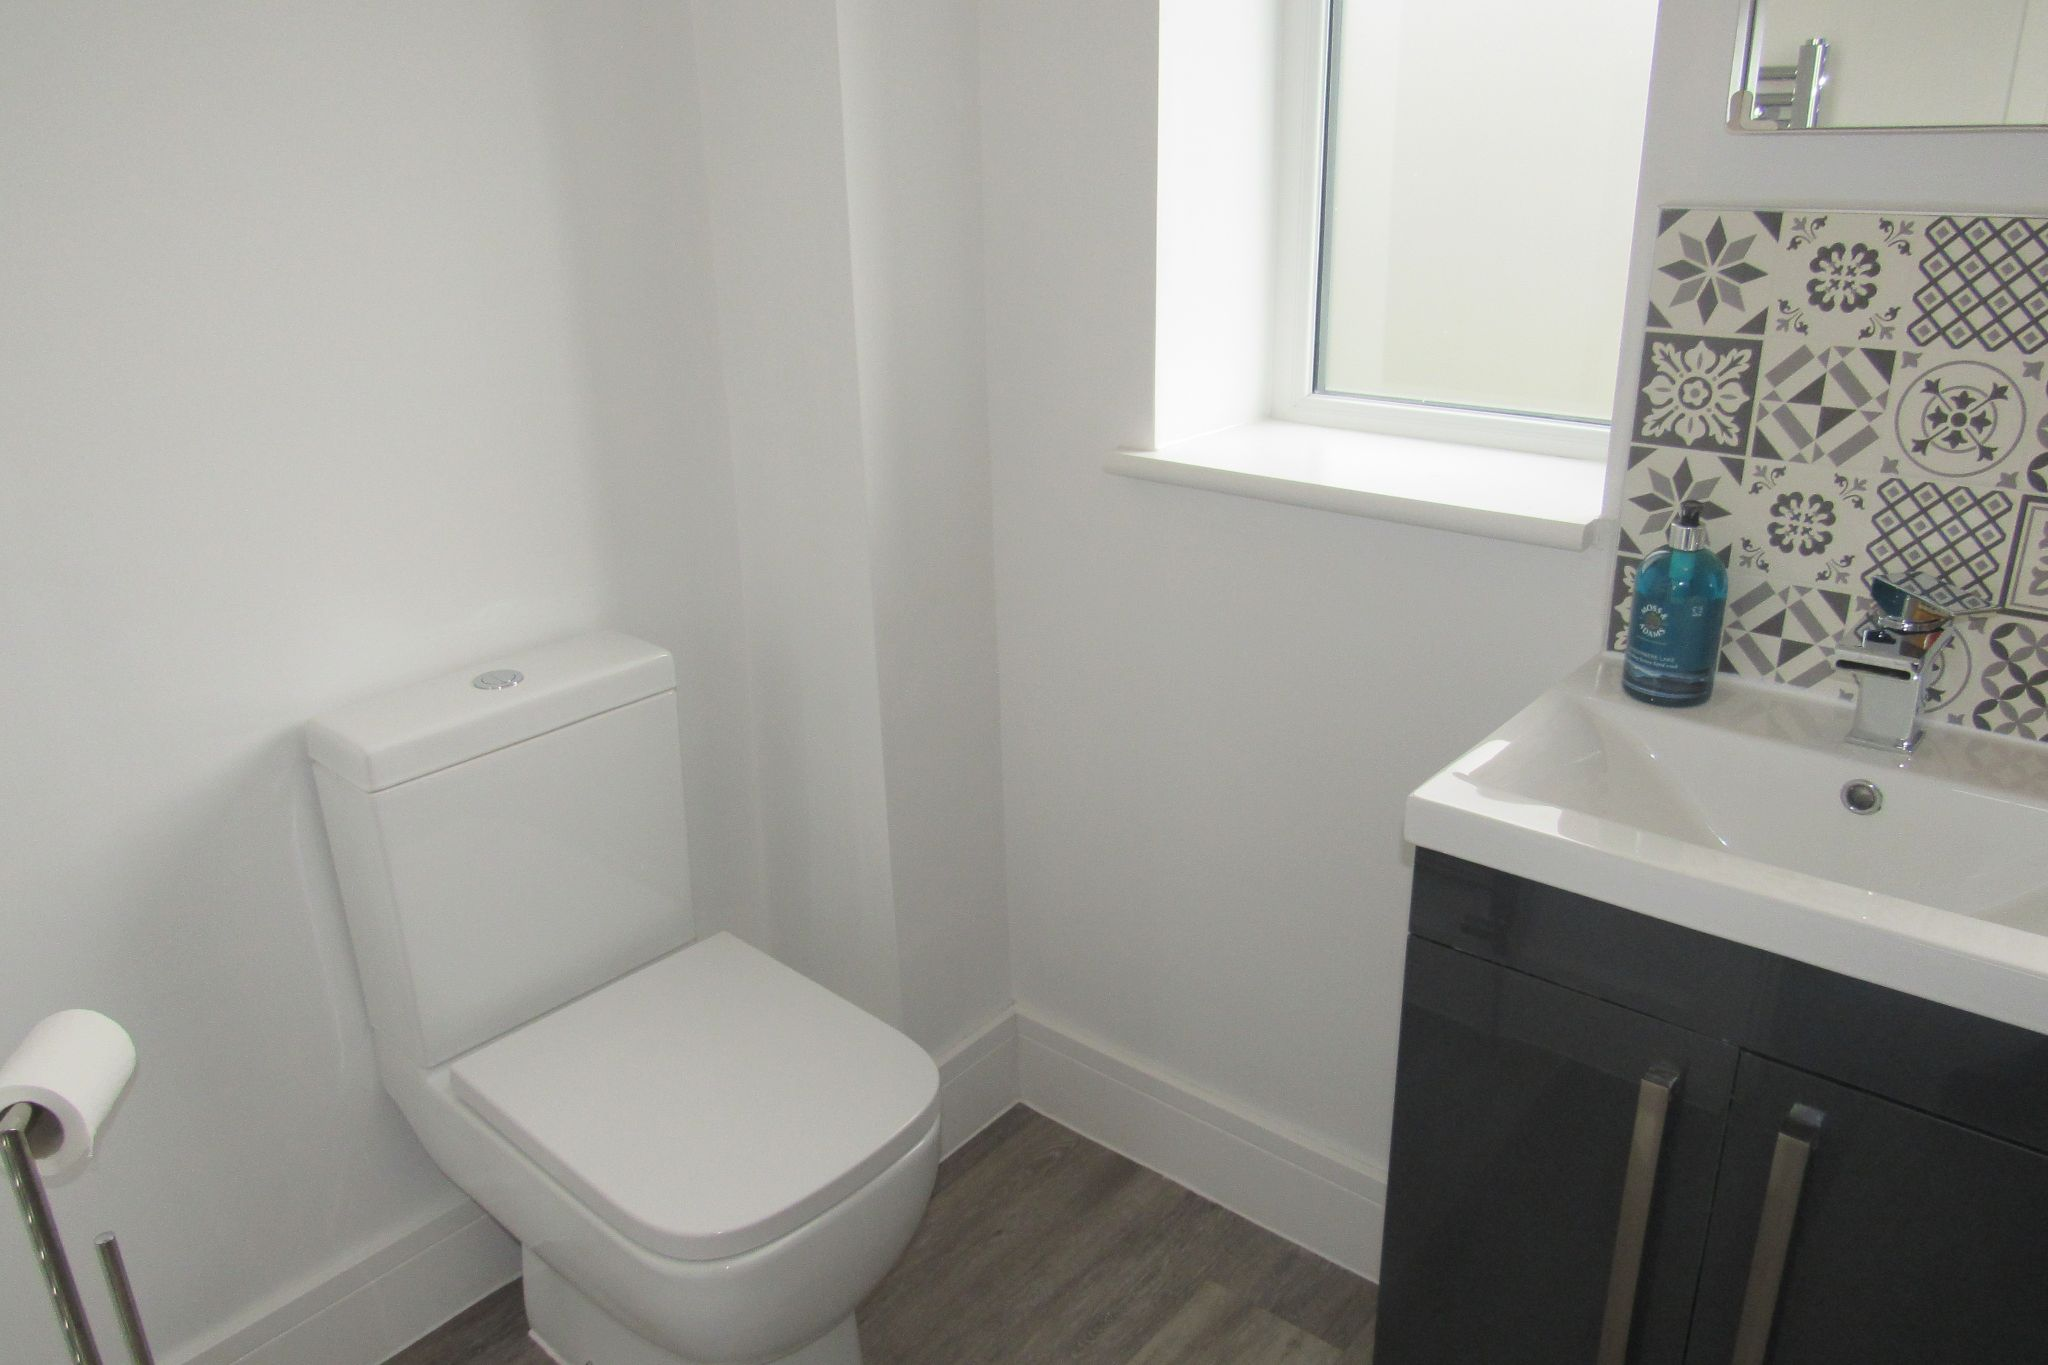 4 bedroom end terraced house SSTC in Manchester - Photograph 14.